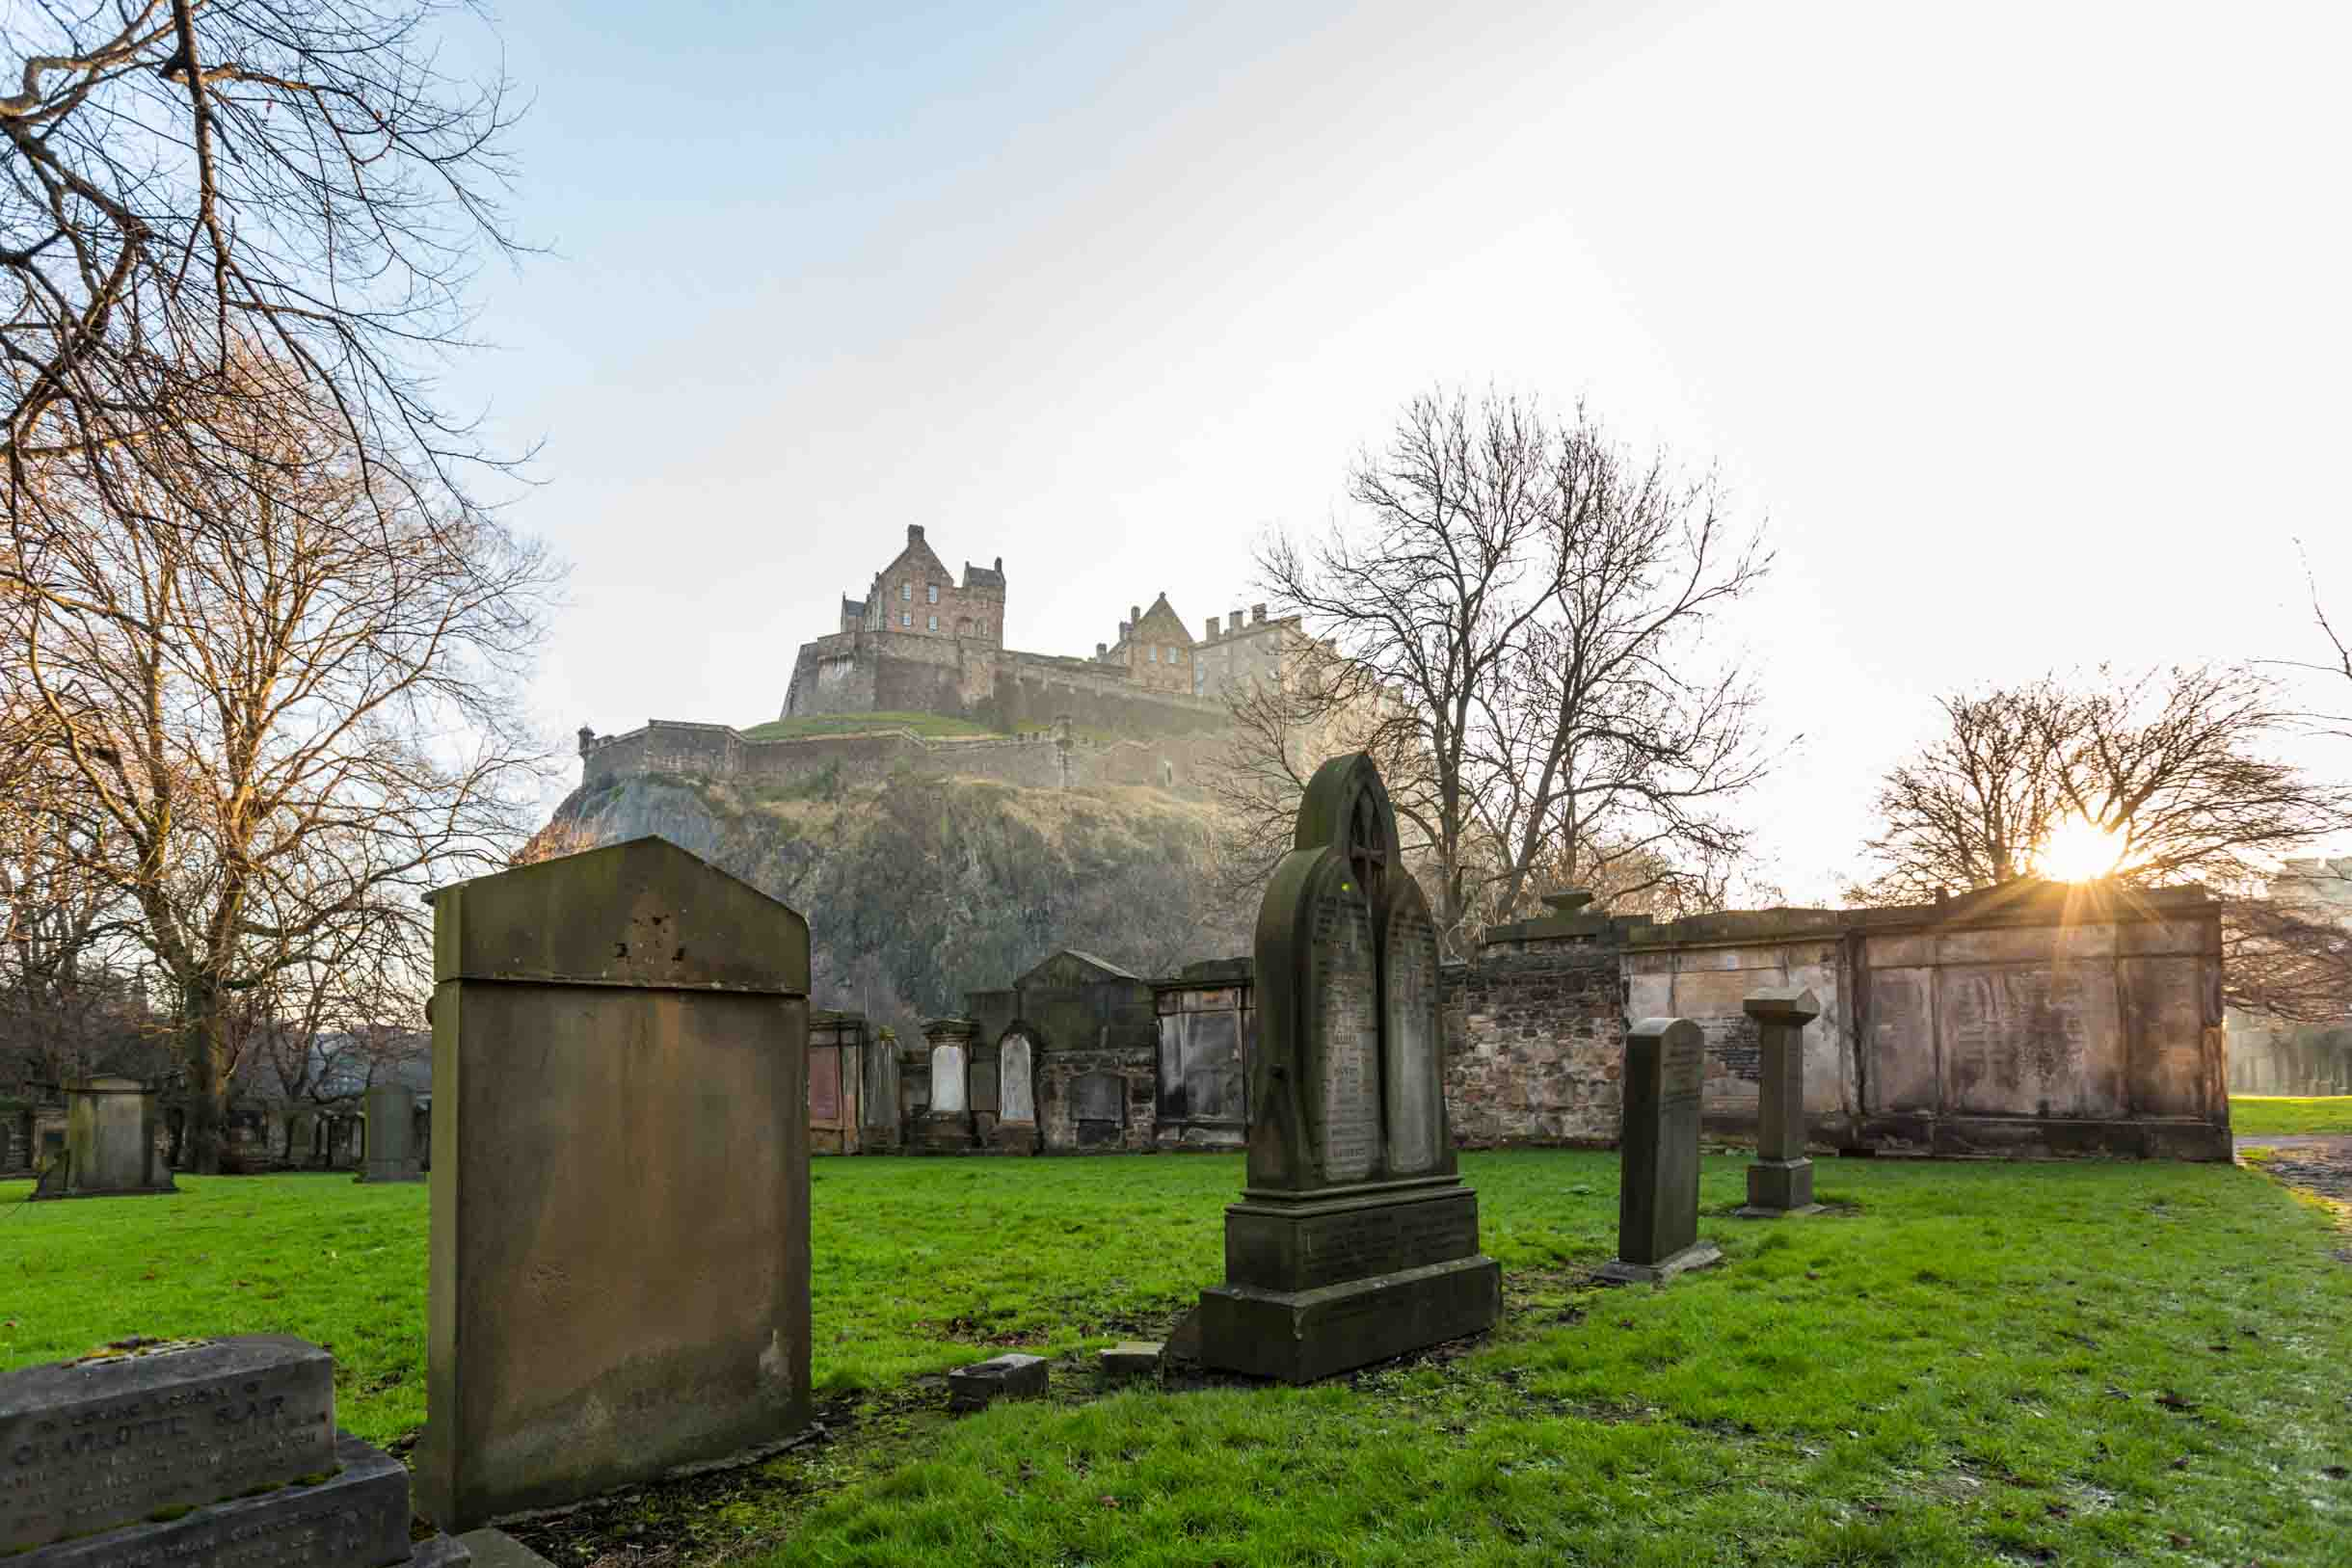 Picture Taken While Exploring Edinburgh - cemetery in Edinburgh